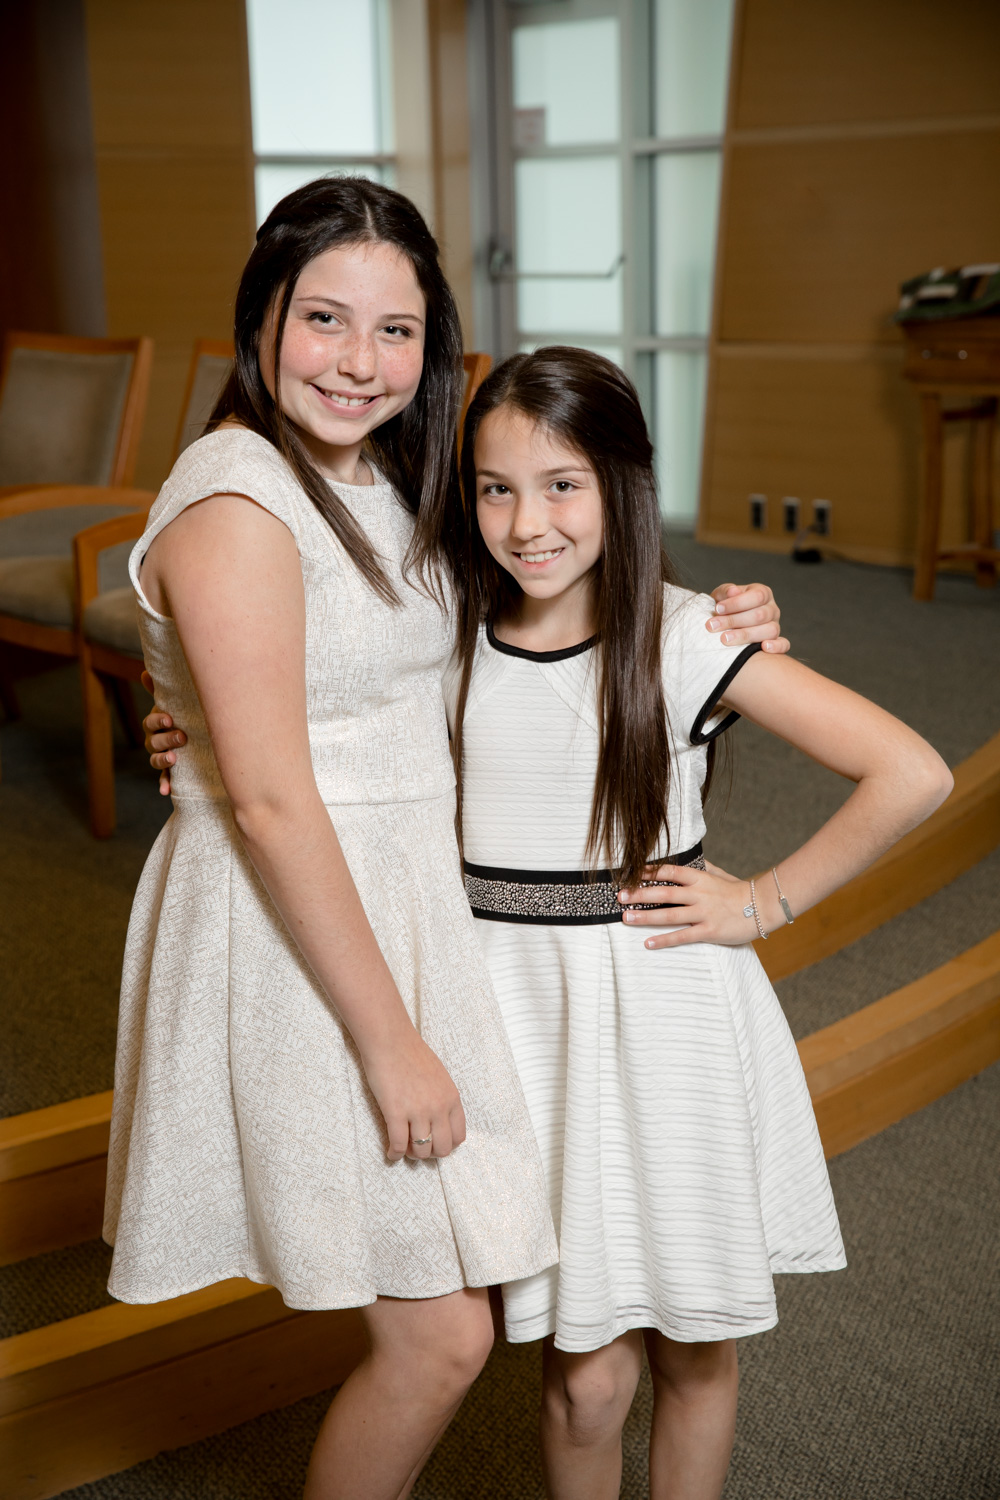 26-north-studios-bat-mitzvah-temple-beth-shalom-needham-verve-natick-5.jpg